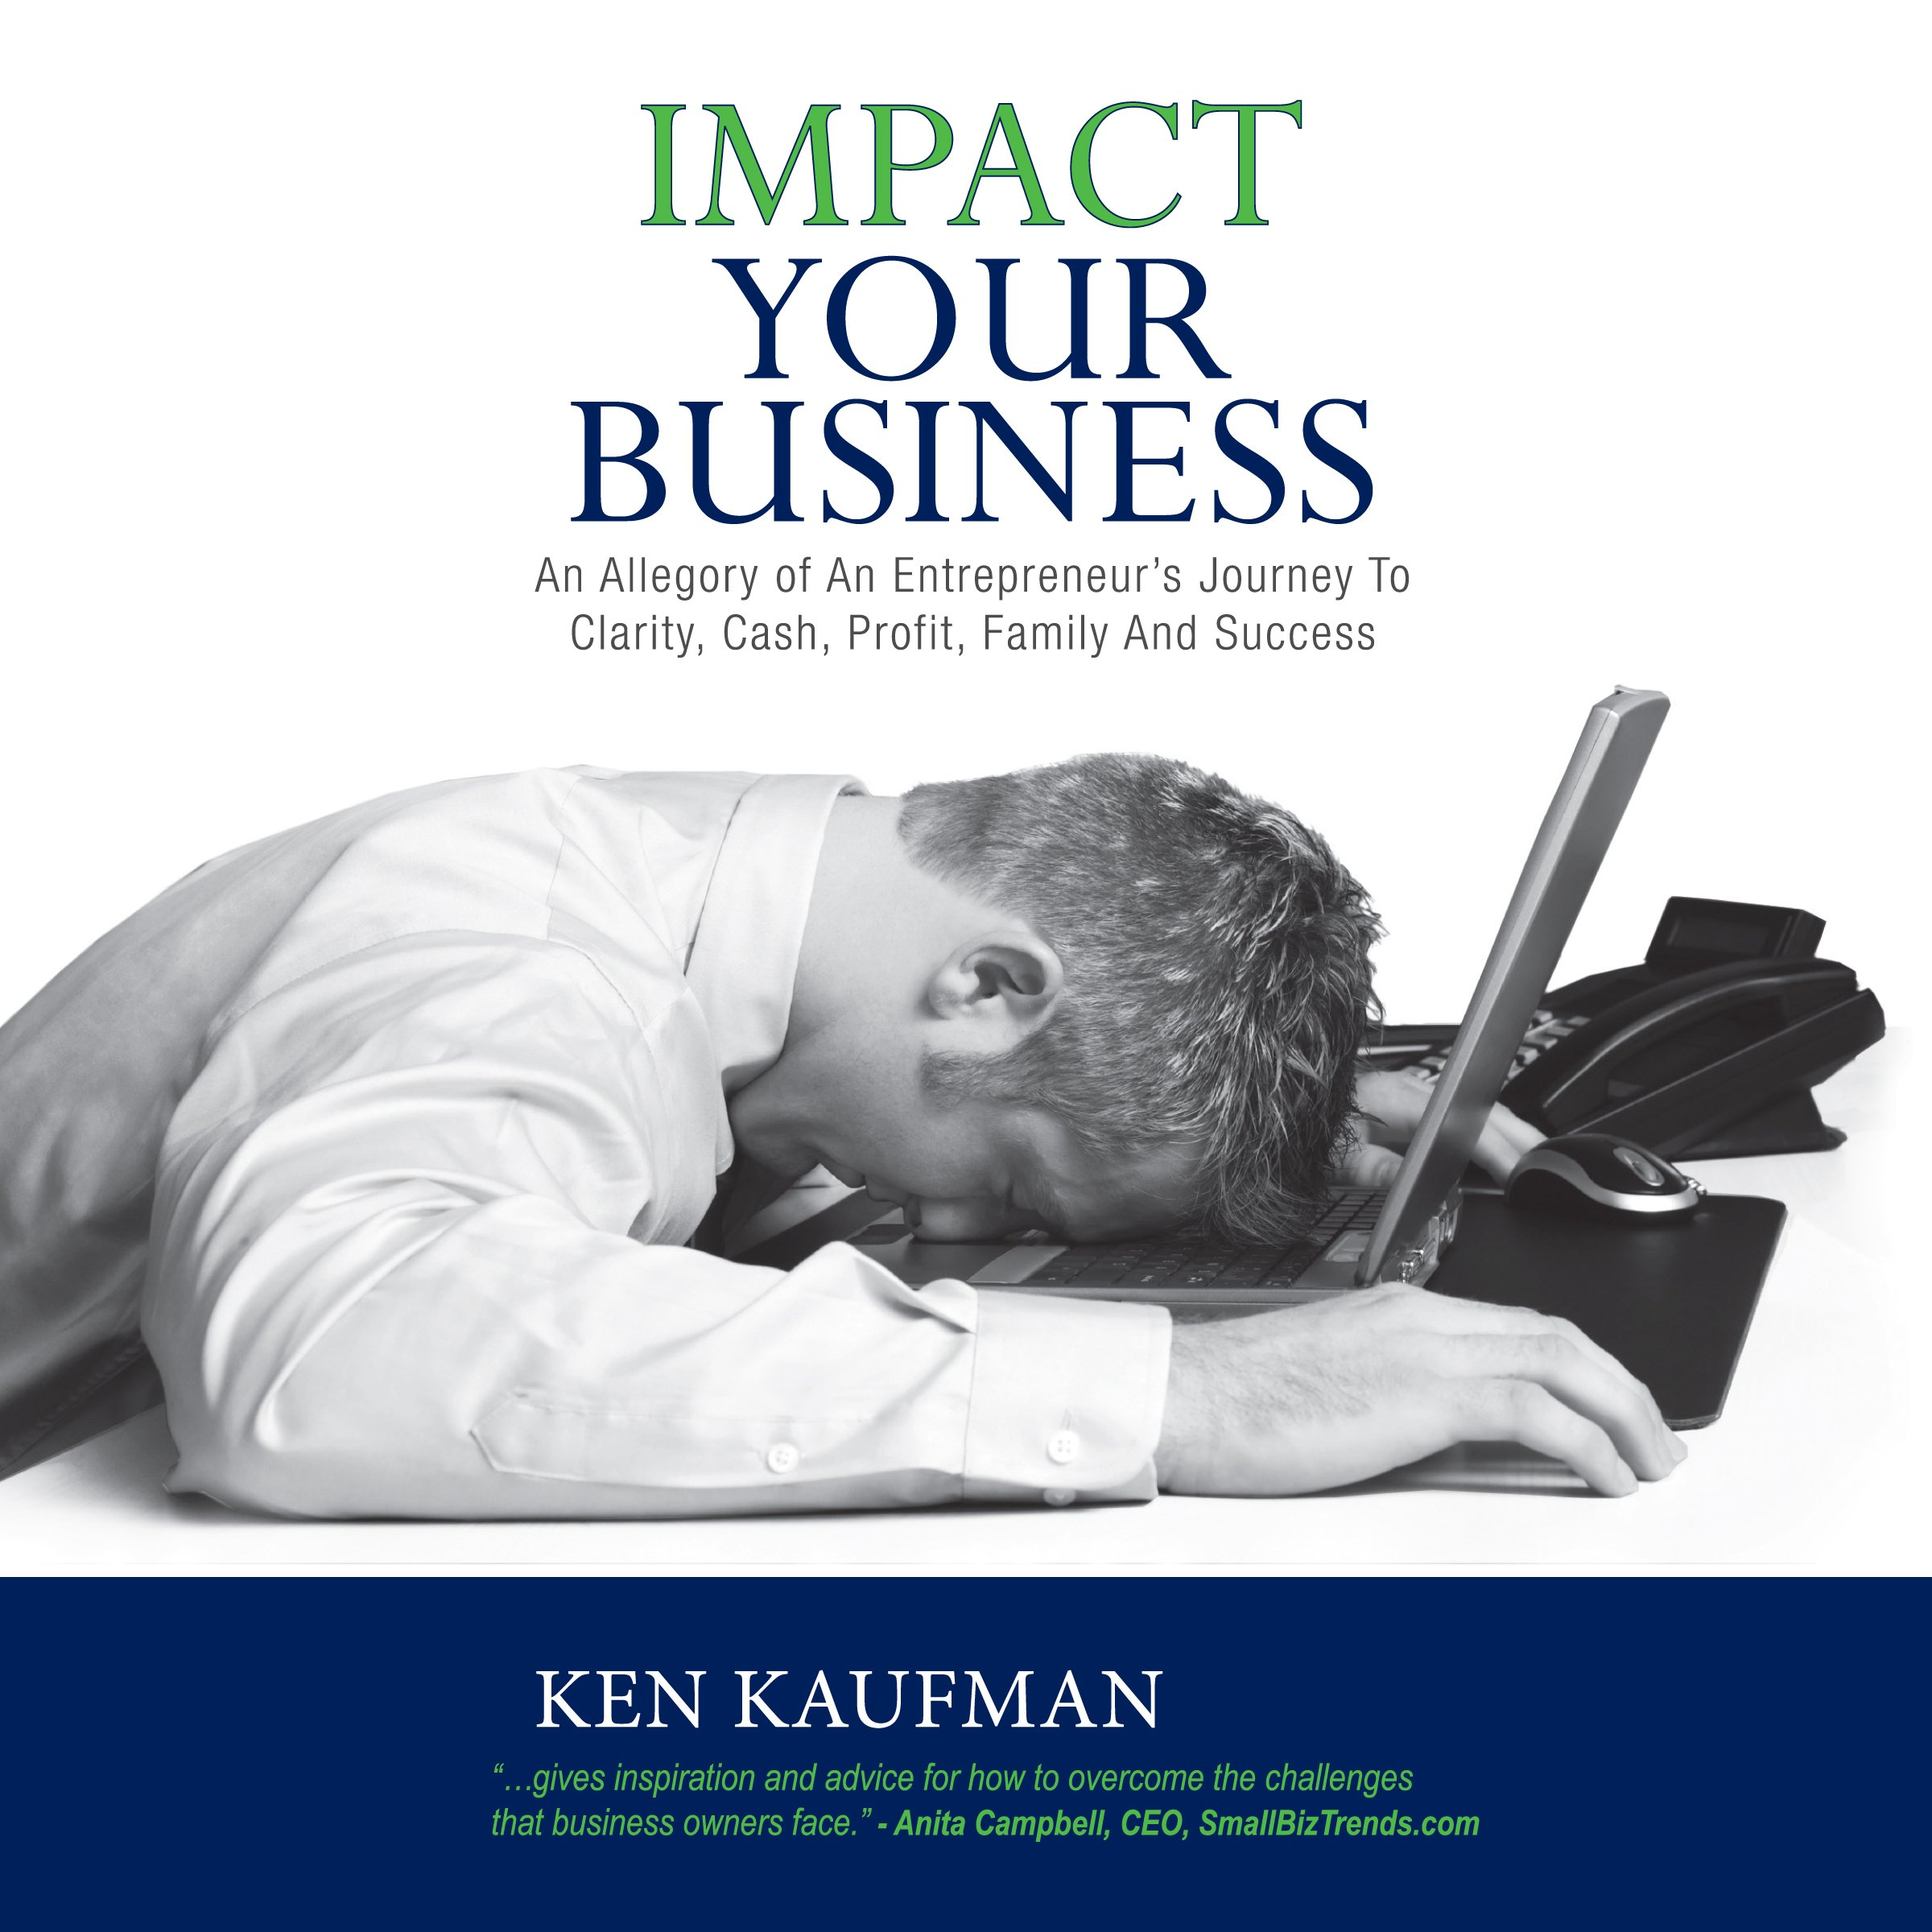 Impact Your Business: An Allegory of an Entrepreneur's Journey to Clarity, Cash, Profit, Family, and Success